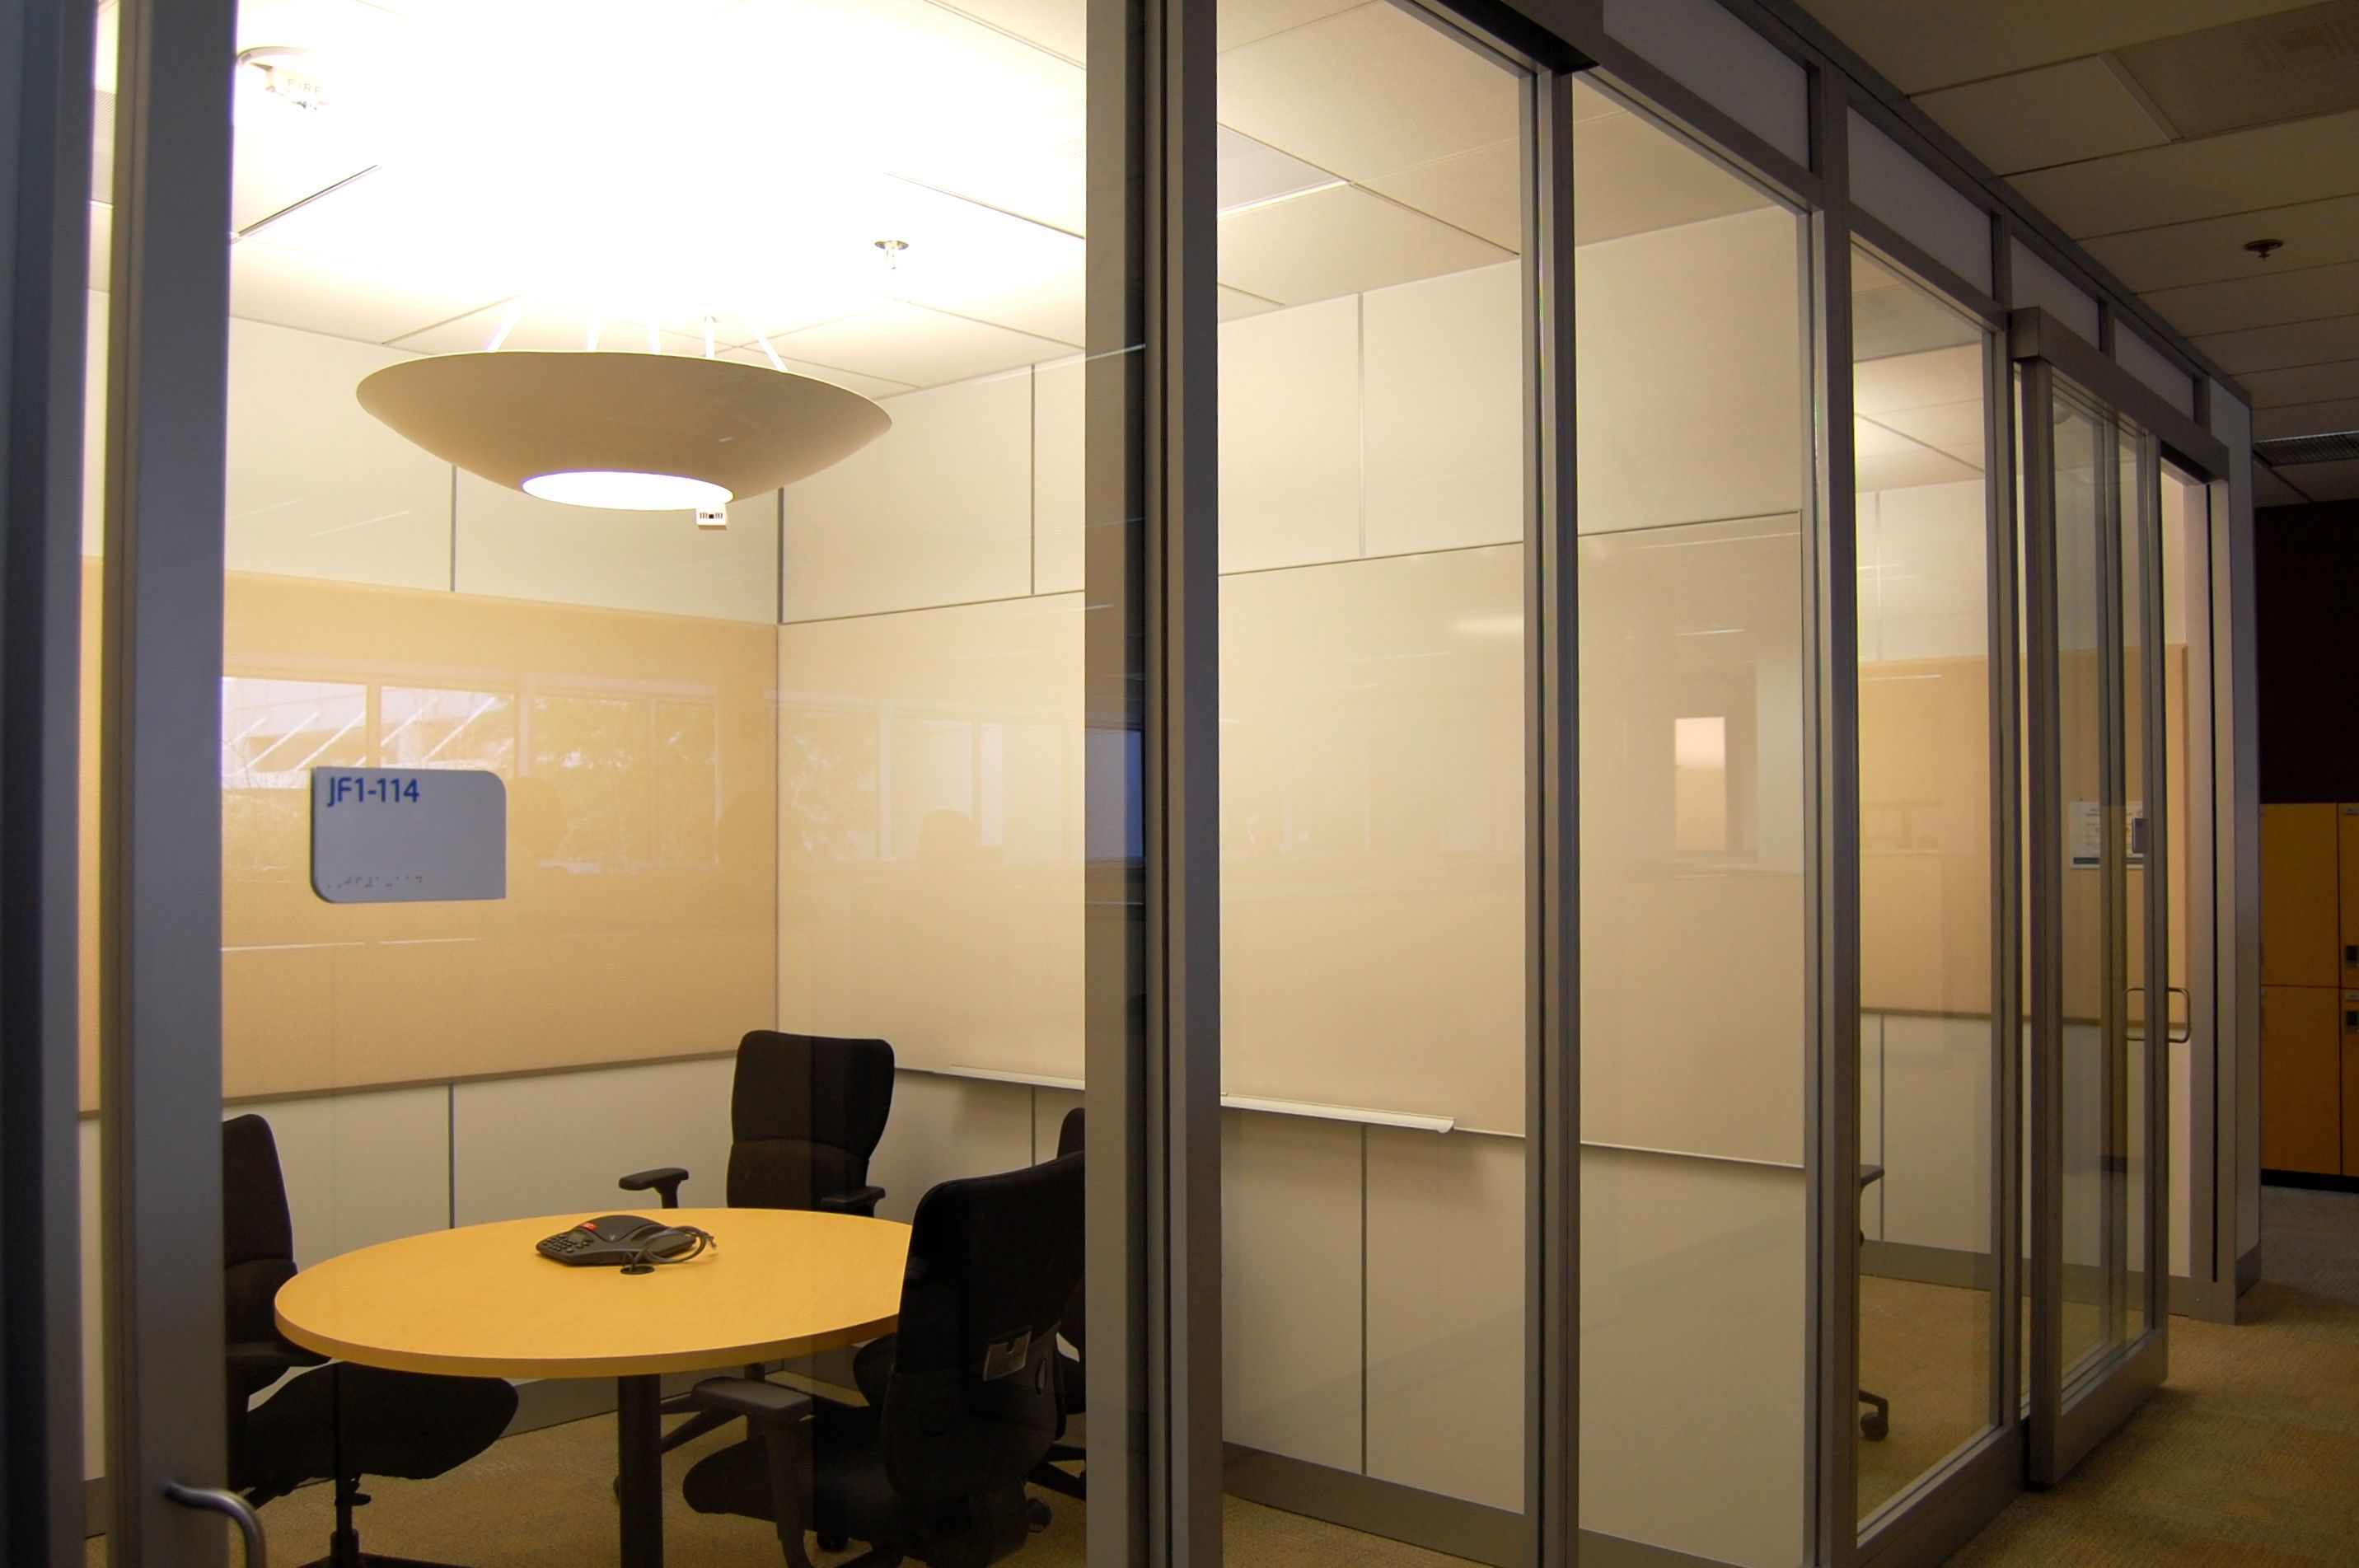 Mini Meeting Rooms Modern Office Design Small Space Design Meeting Room Design Office